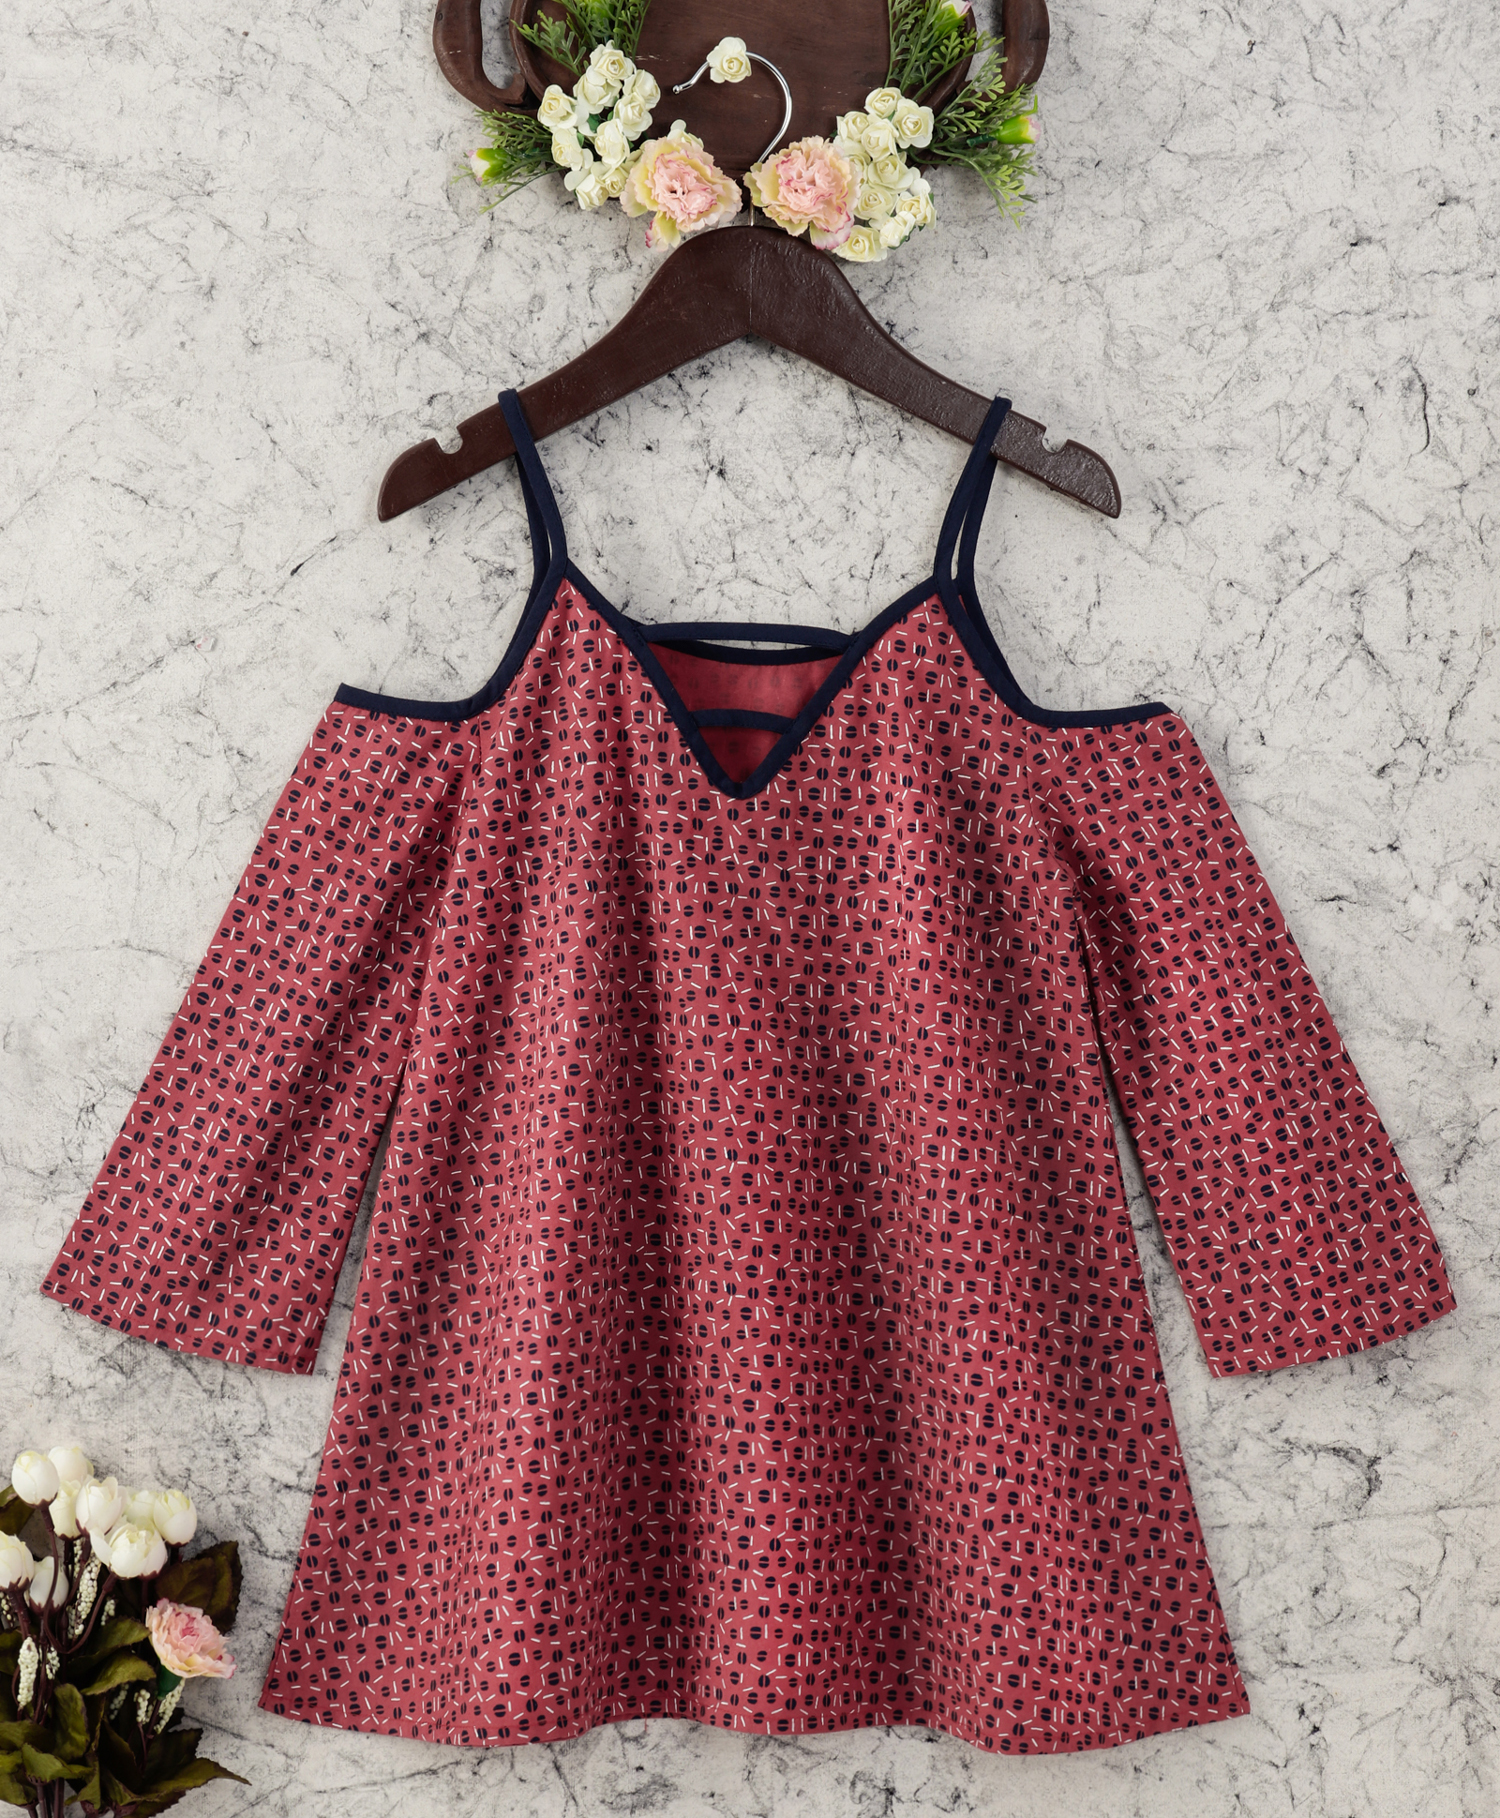 01c06856c463f Olele Girls Edie Dot Brick Red Dress   cold shoulder top for 6 year girl